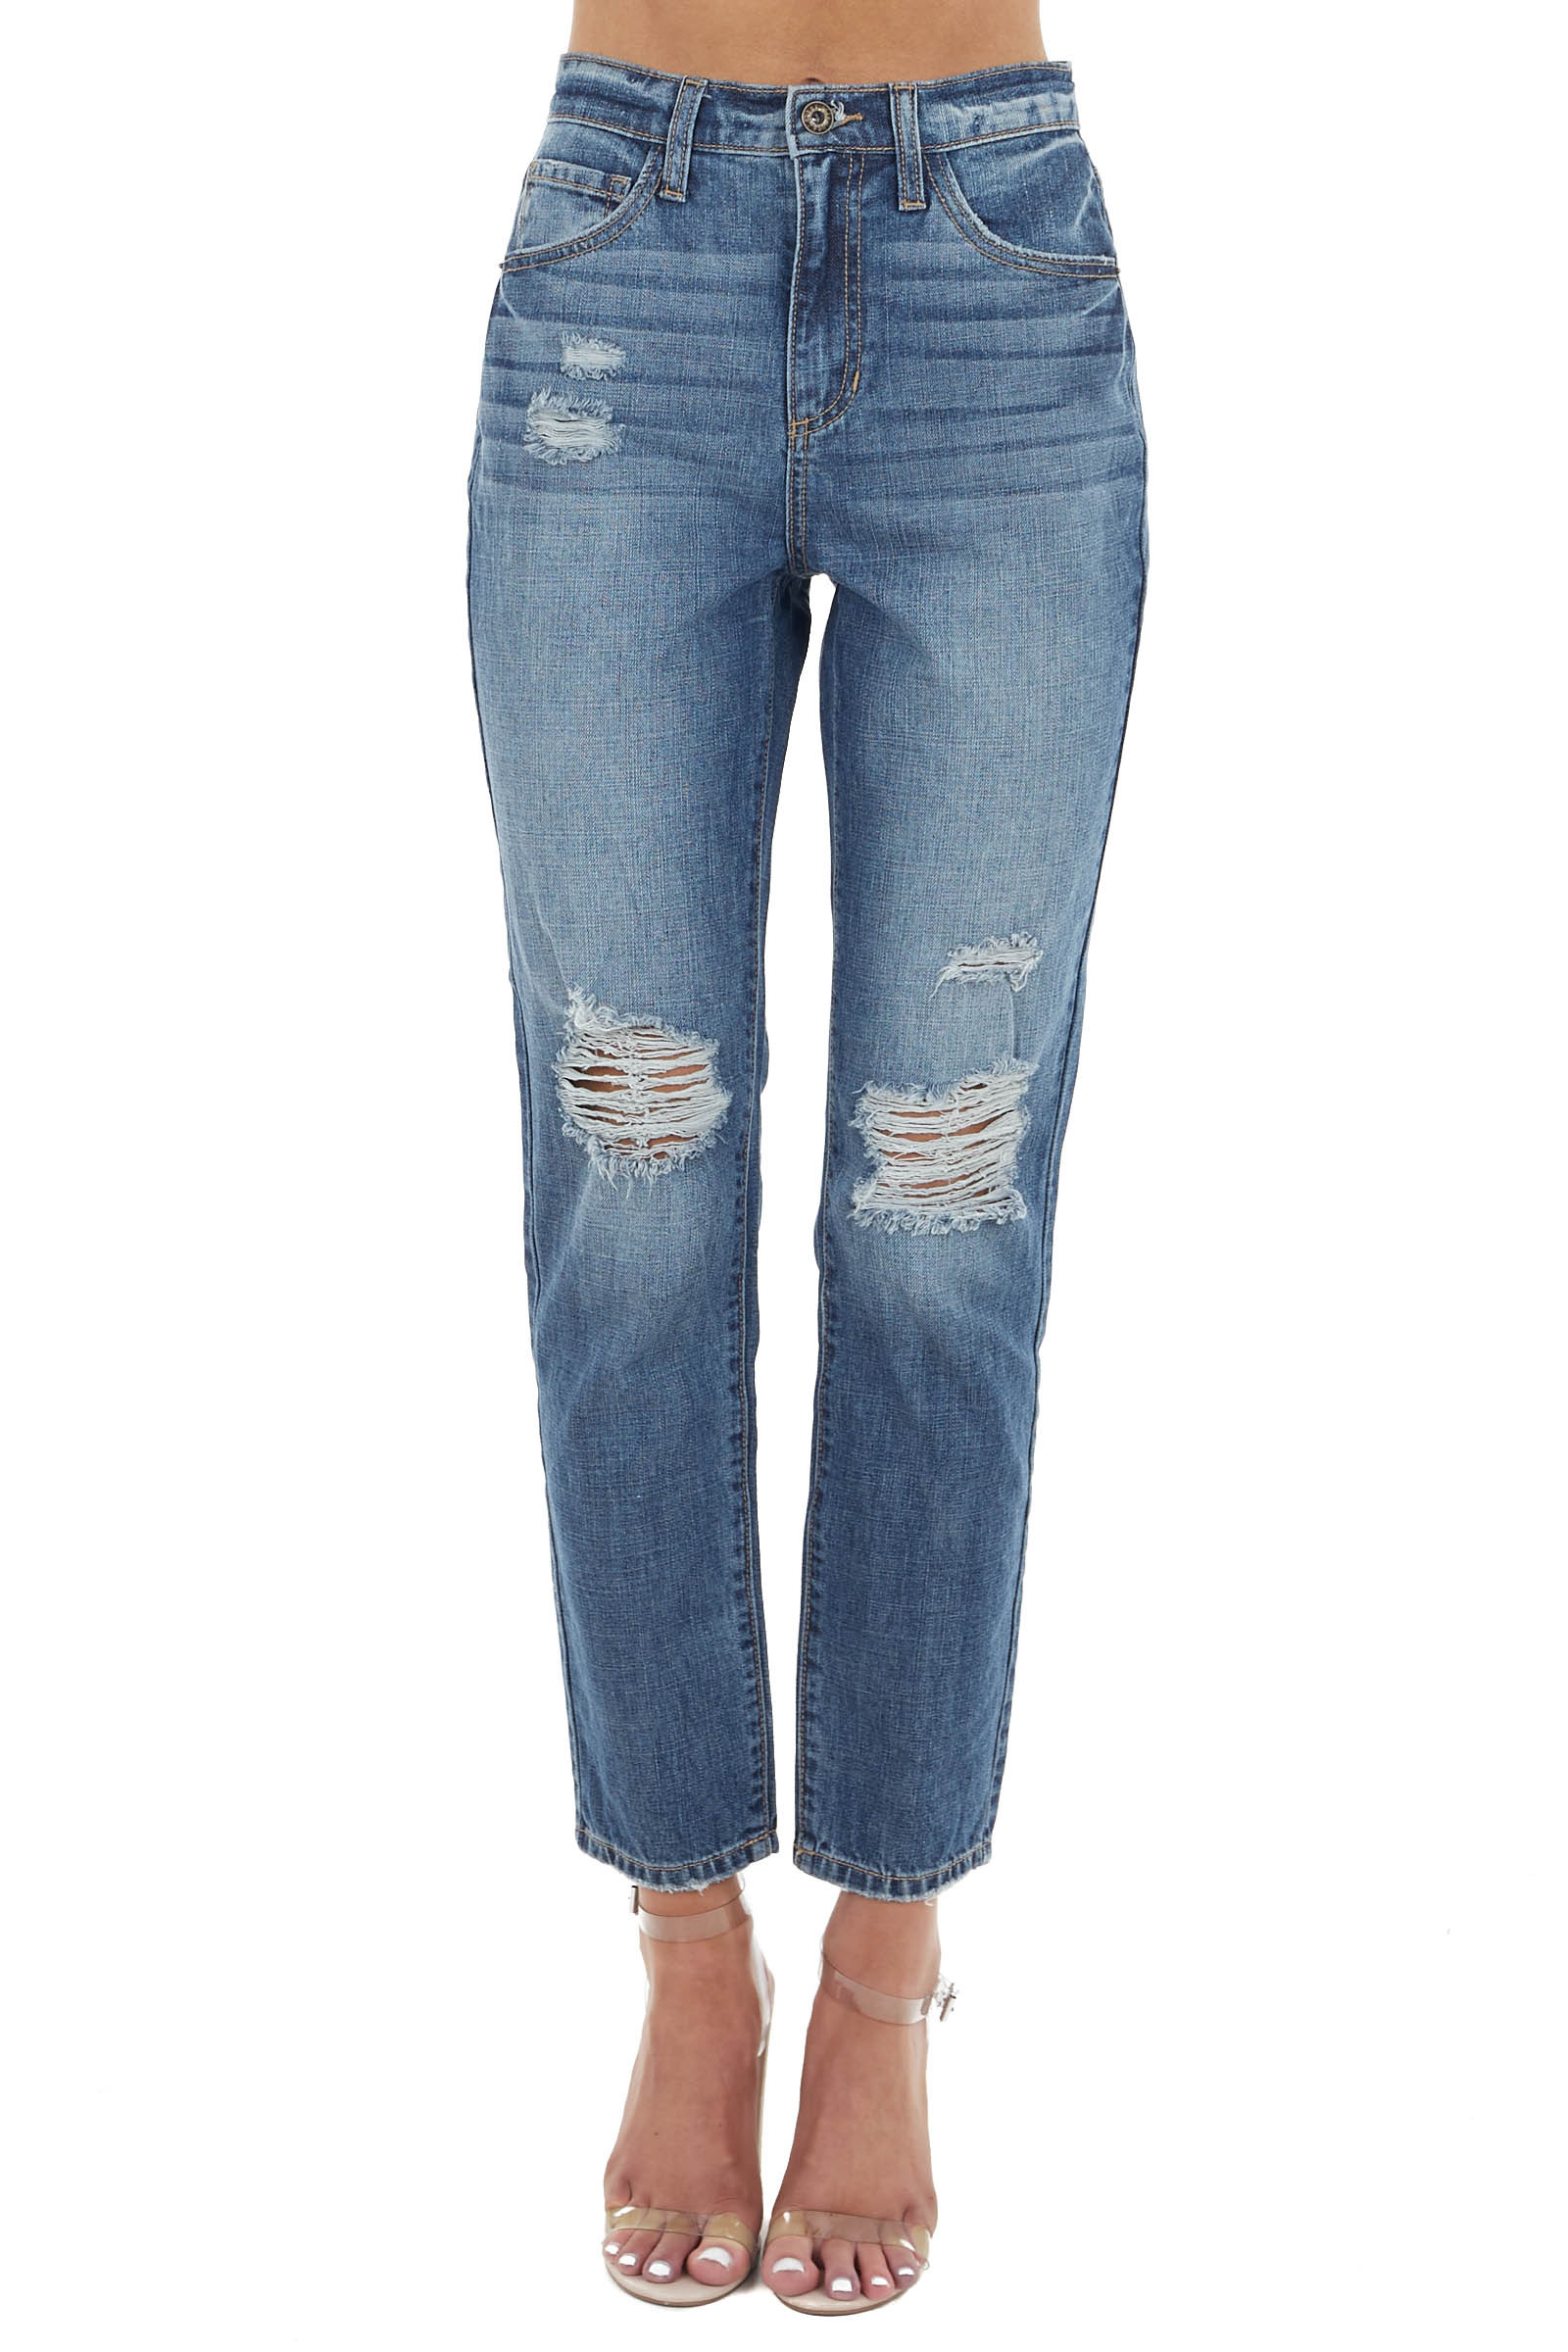 Medium Vintage Wash Distressed High Rise Straight Jeans